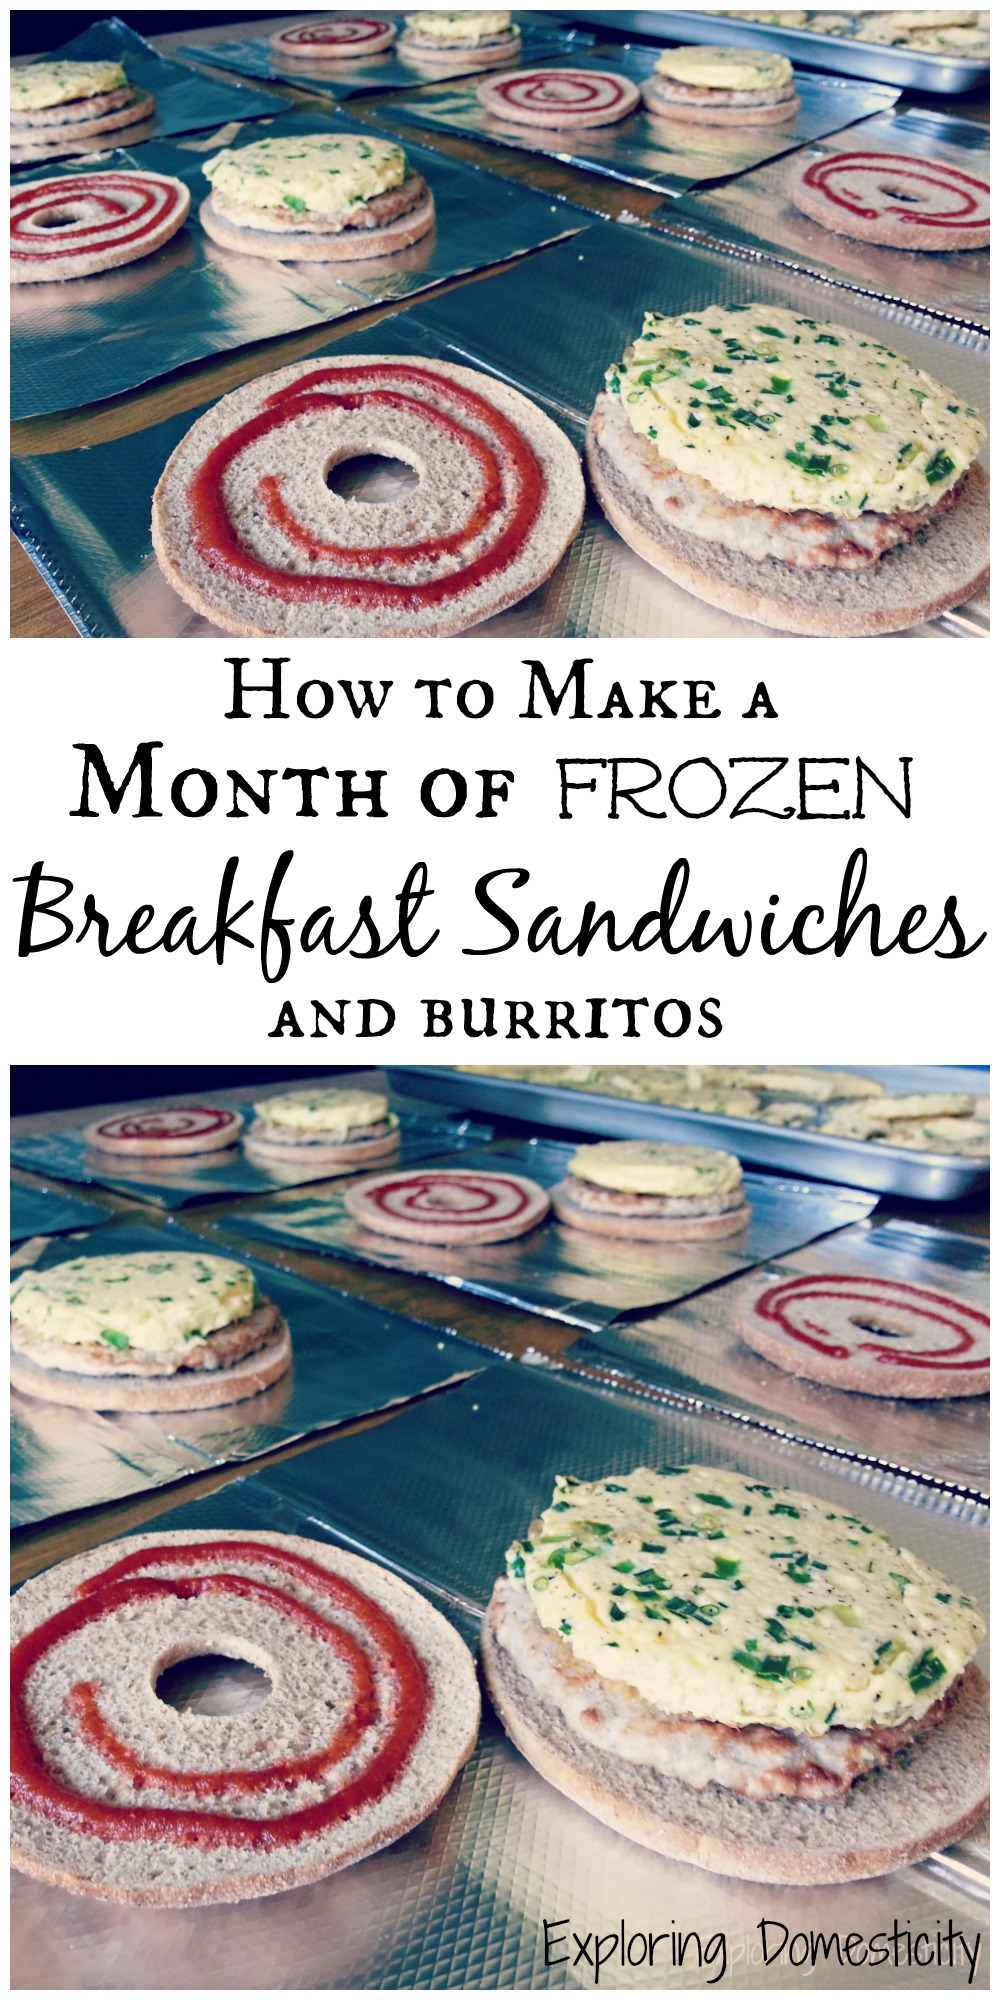 Make A Cardboard 3d Model Of Your Area Using Local: How To Make A Month Of Frozen Breakfast Sandwiches {and